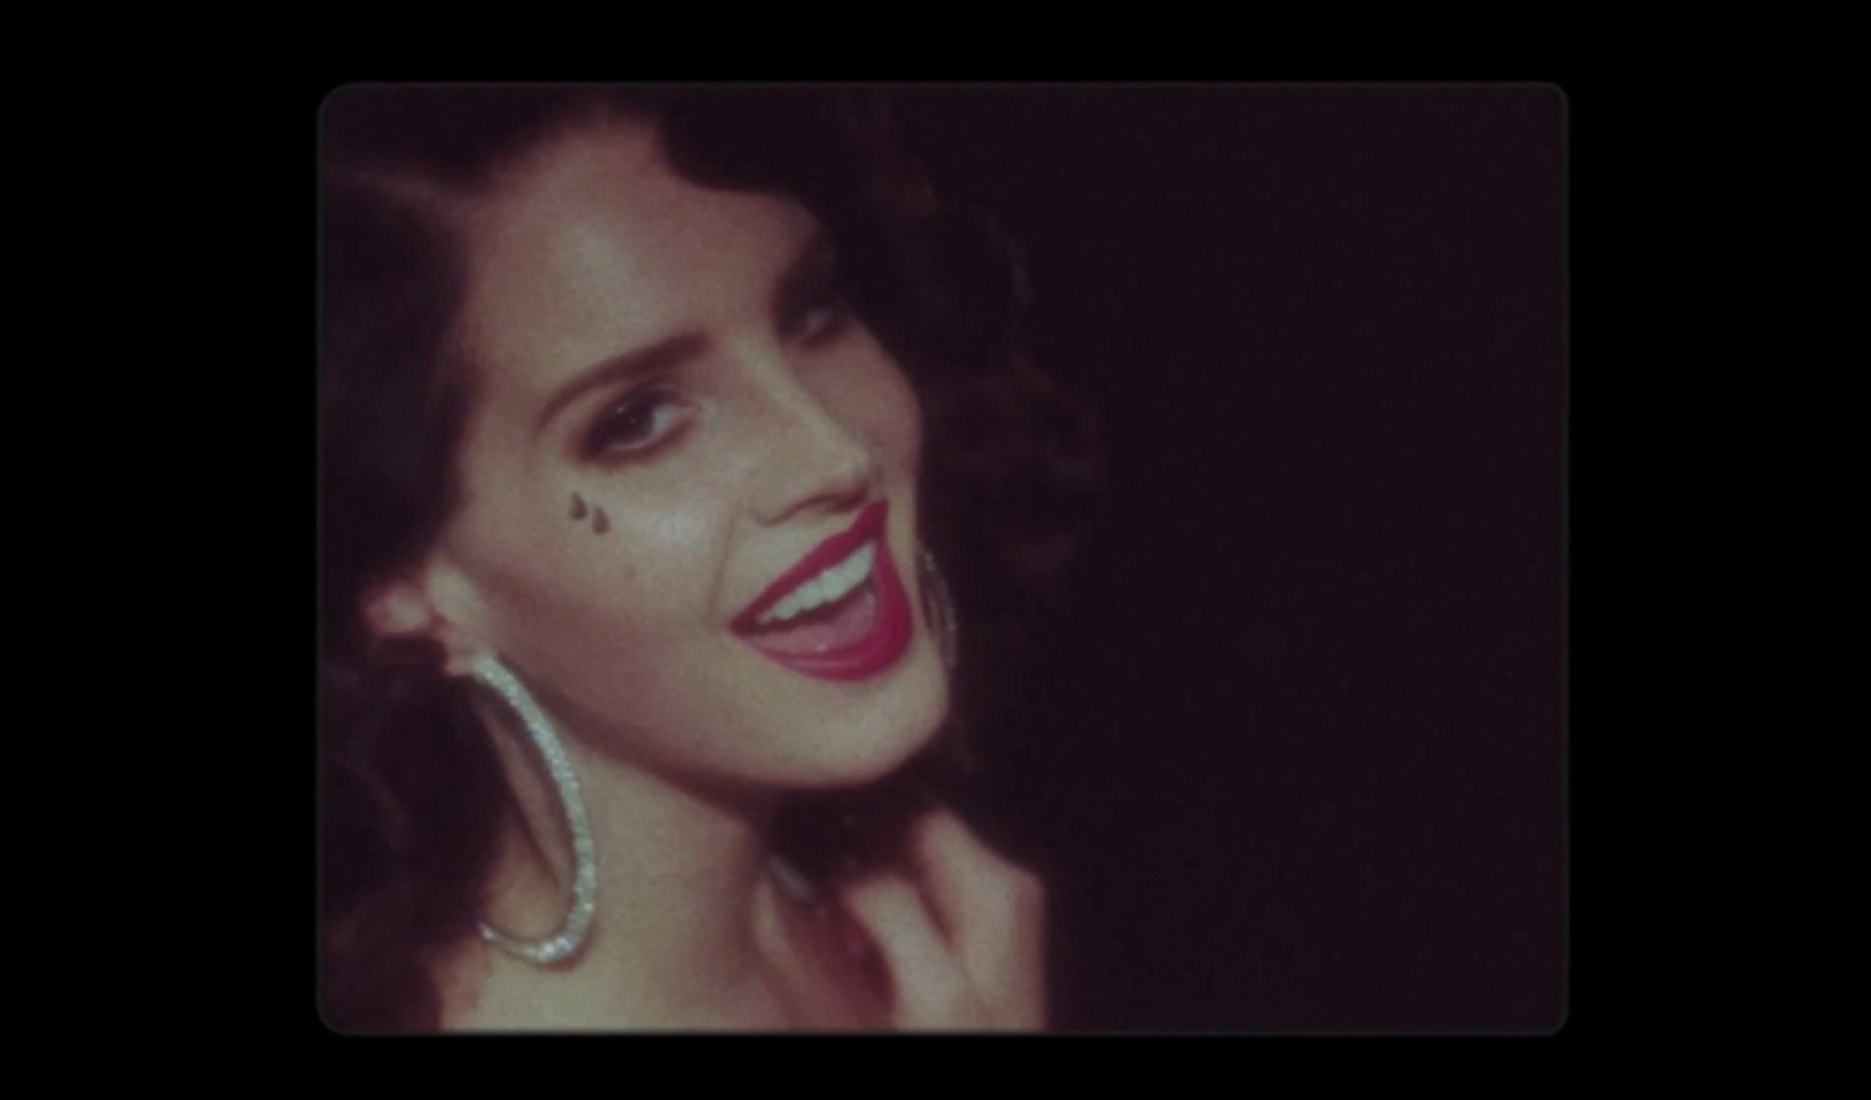 Video screenshot. Lana Del Rey - Young and Beautiful.